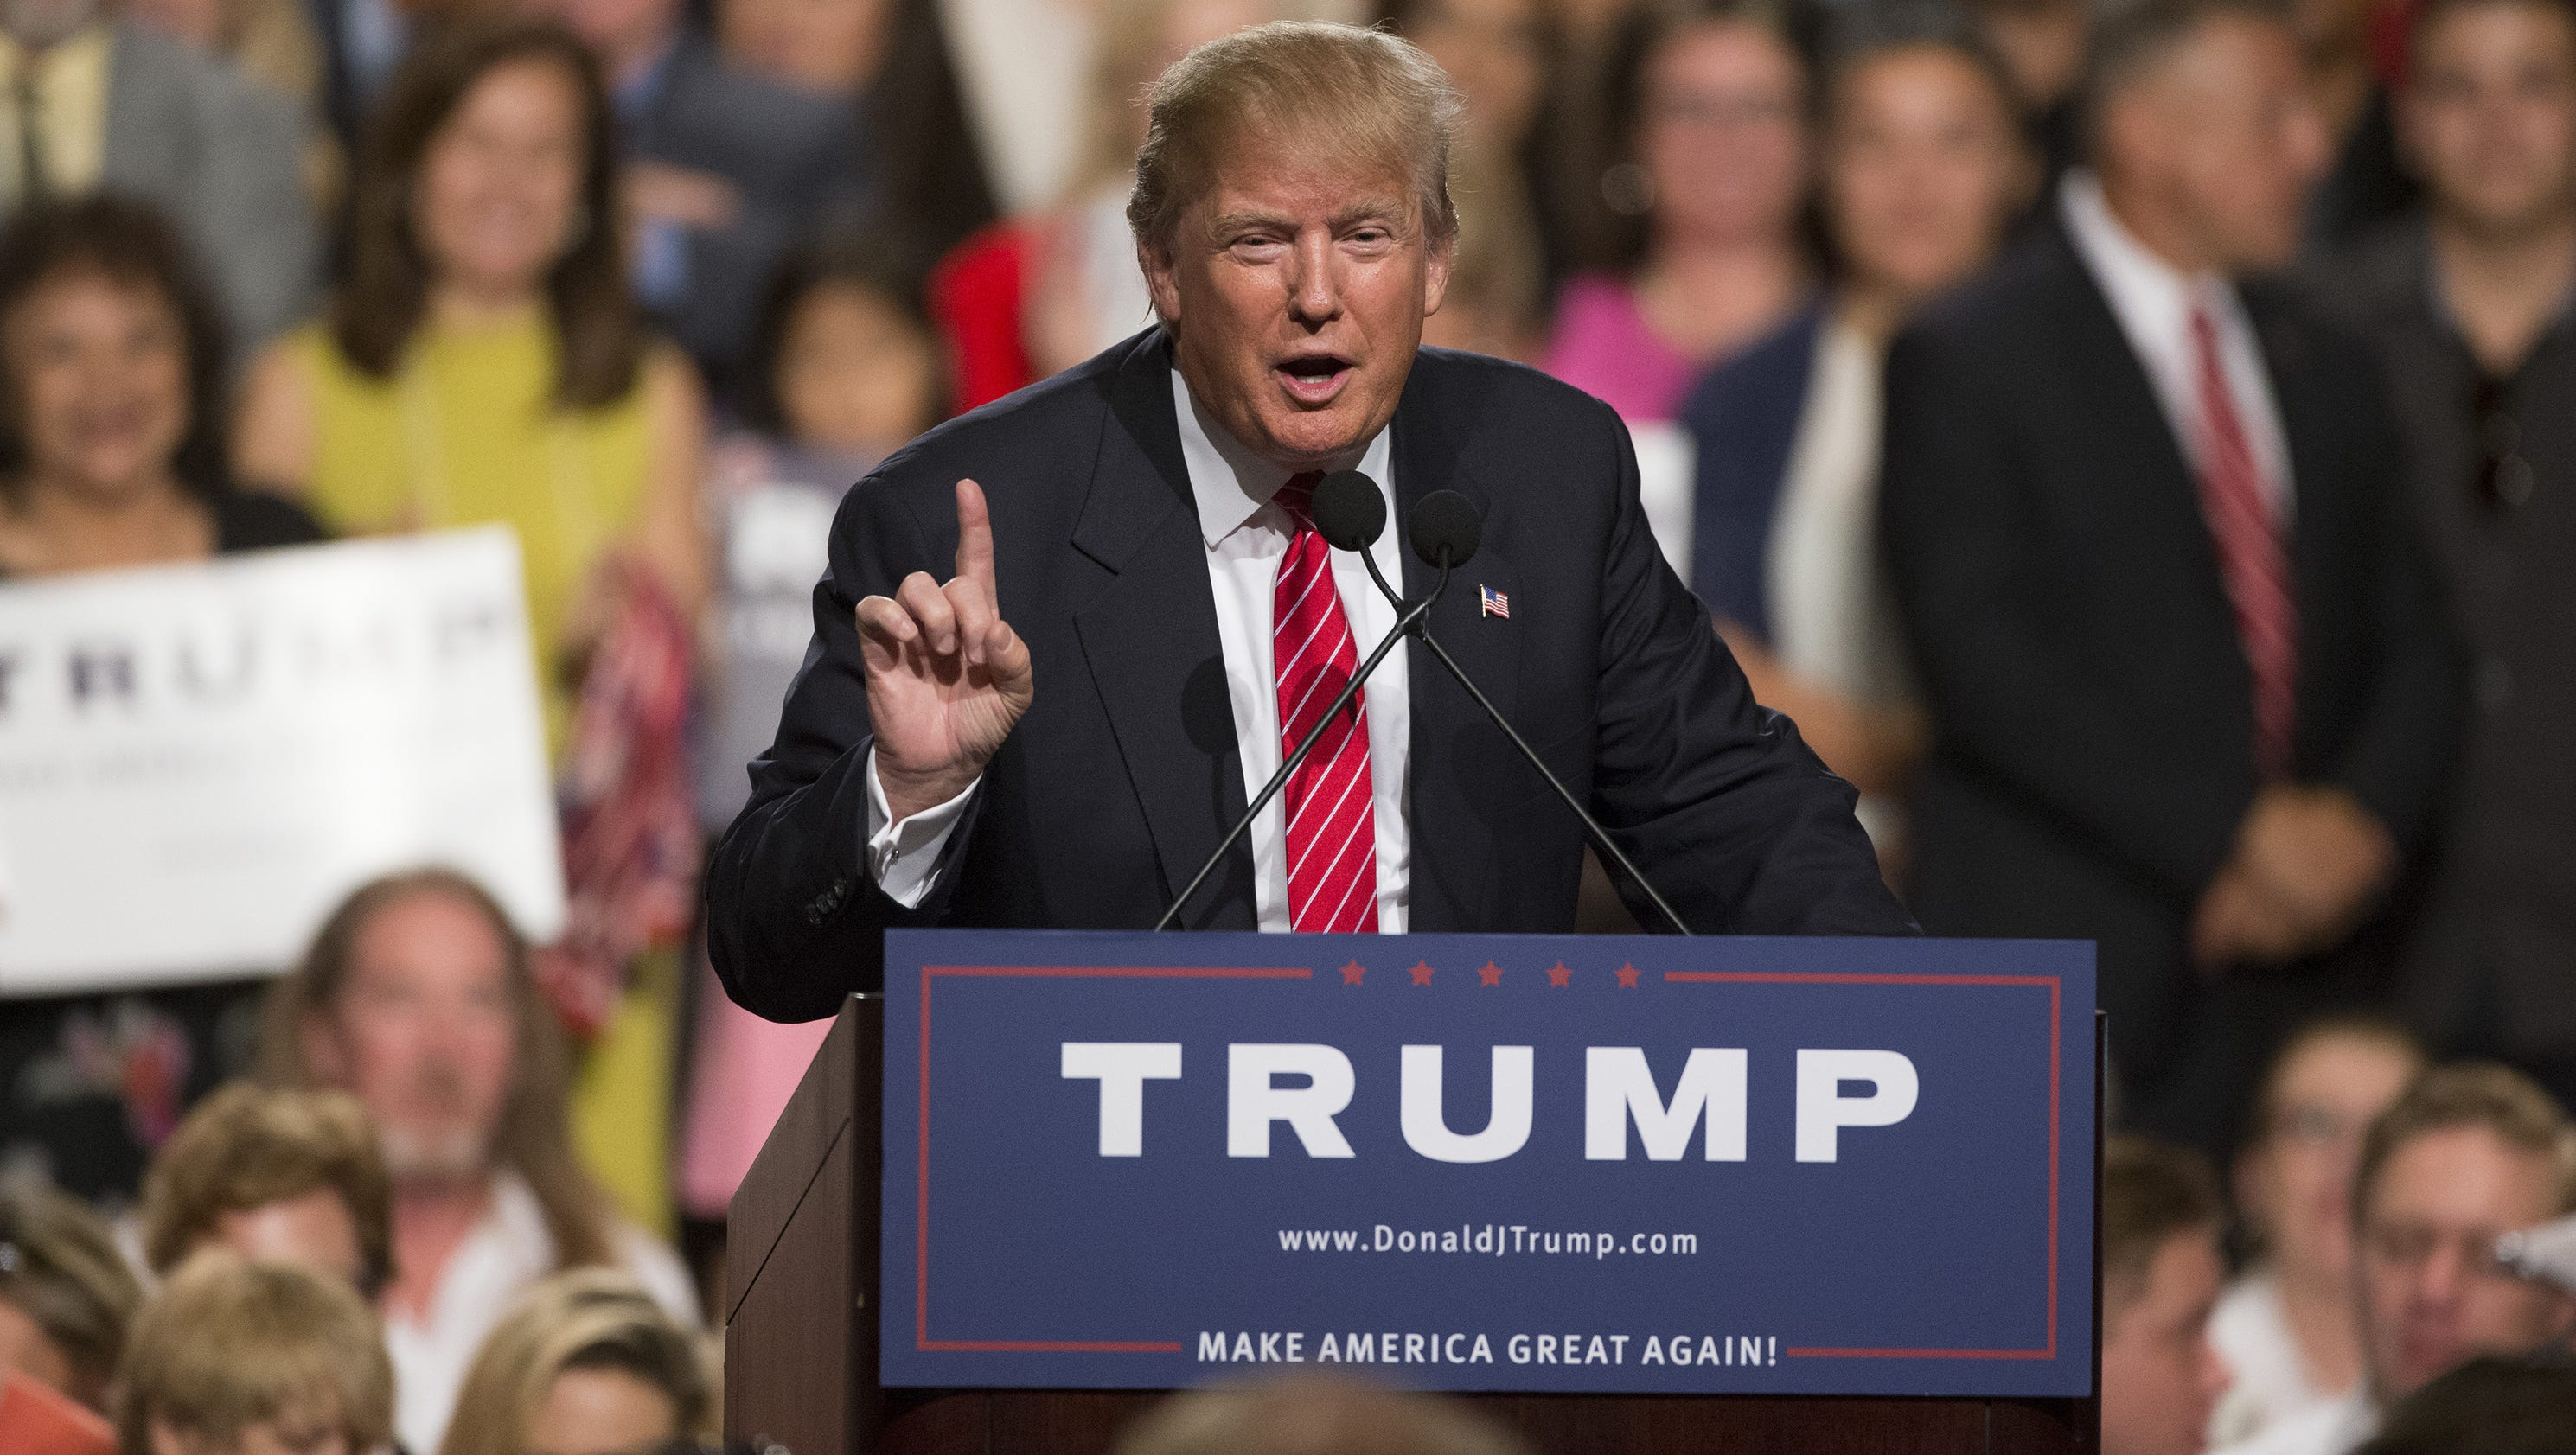 Donald Trump to hold rally in Mesa on Wednesday